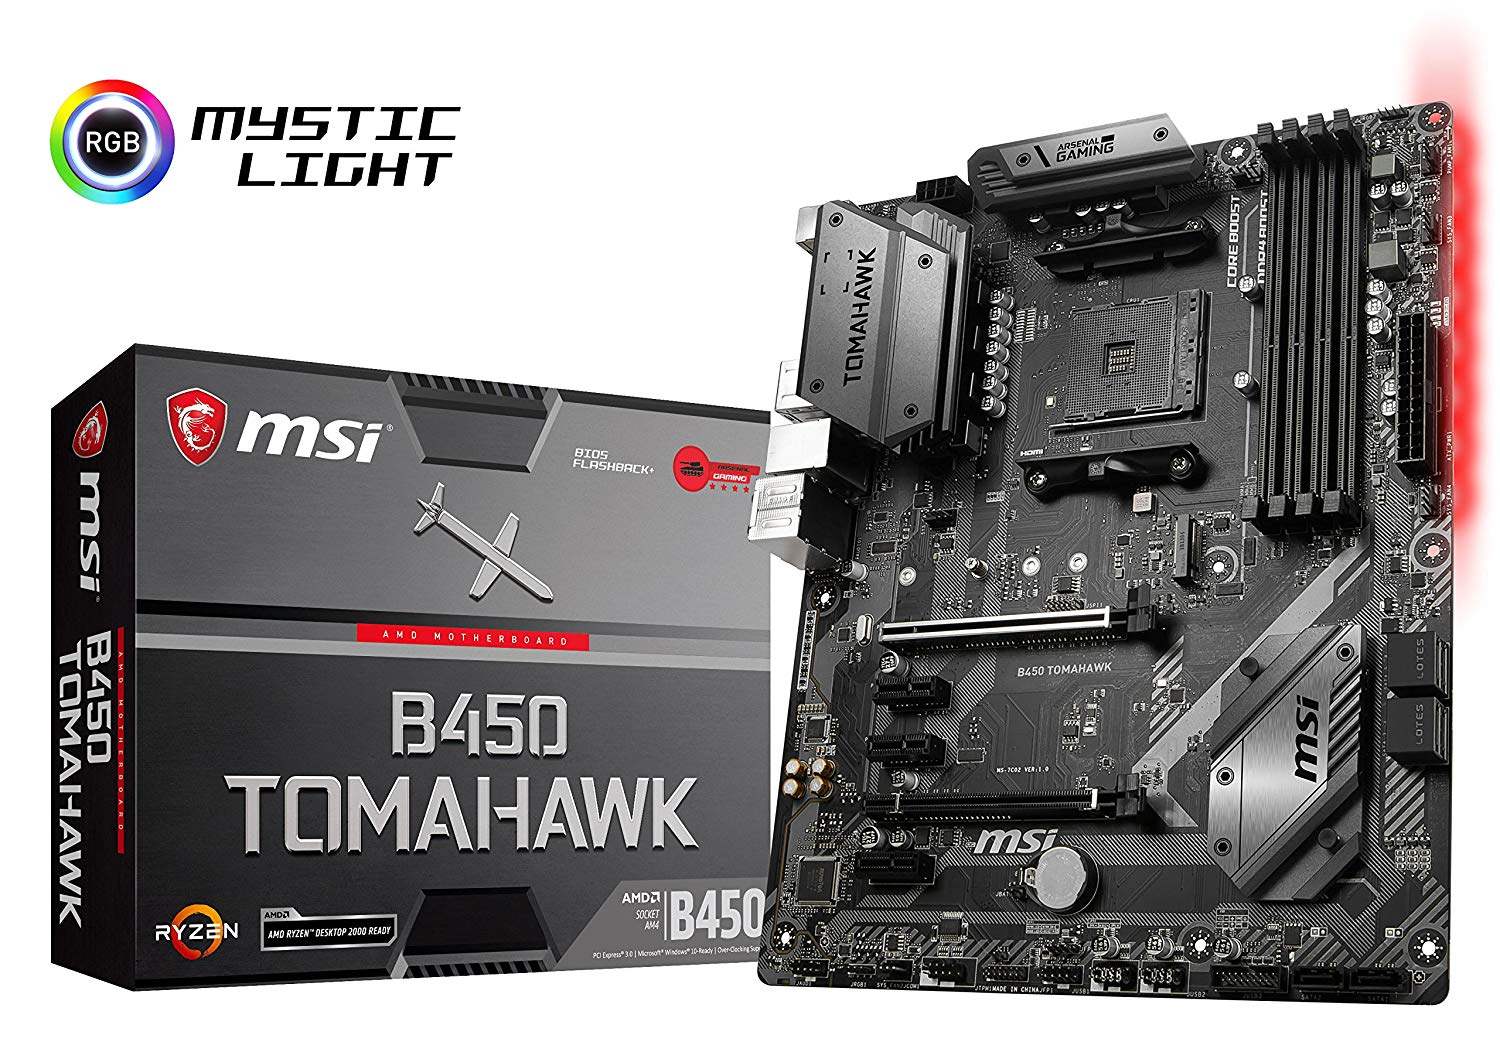 3 Motherboard - Best $1000 PC Build 2019